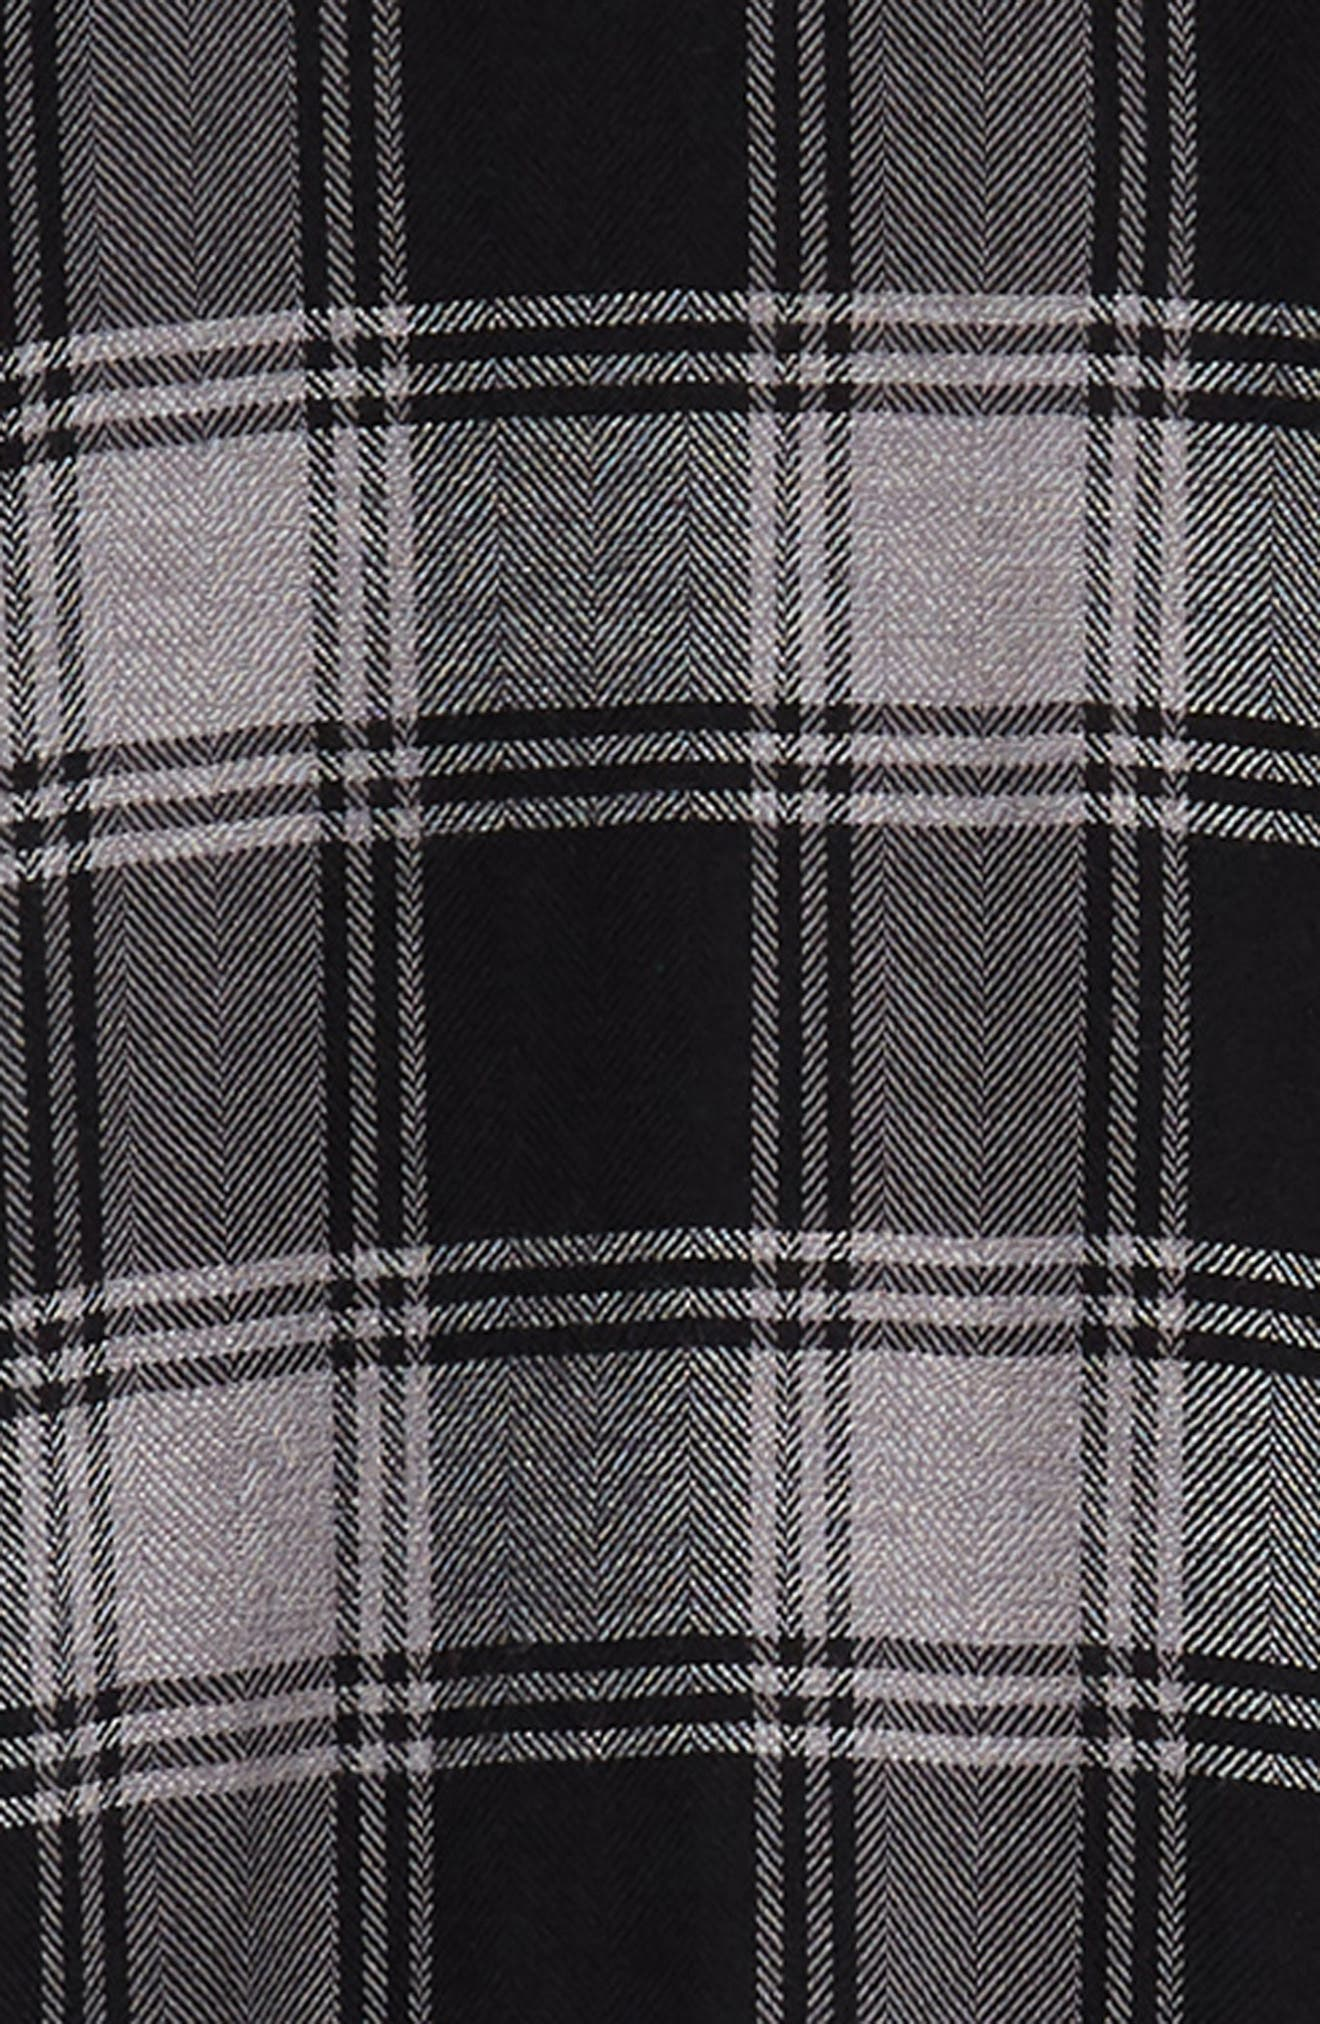 Lennox Slim Fit Plaid Sport Shirt,                             Alternate thumbnail 6, color,                             BLACK GREY